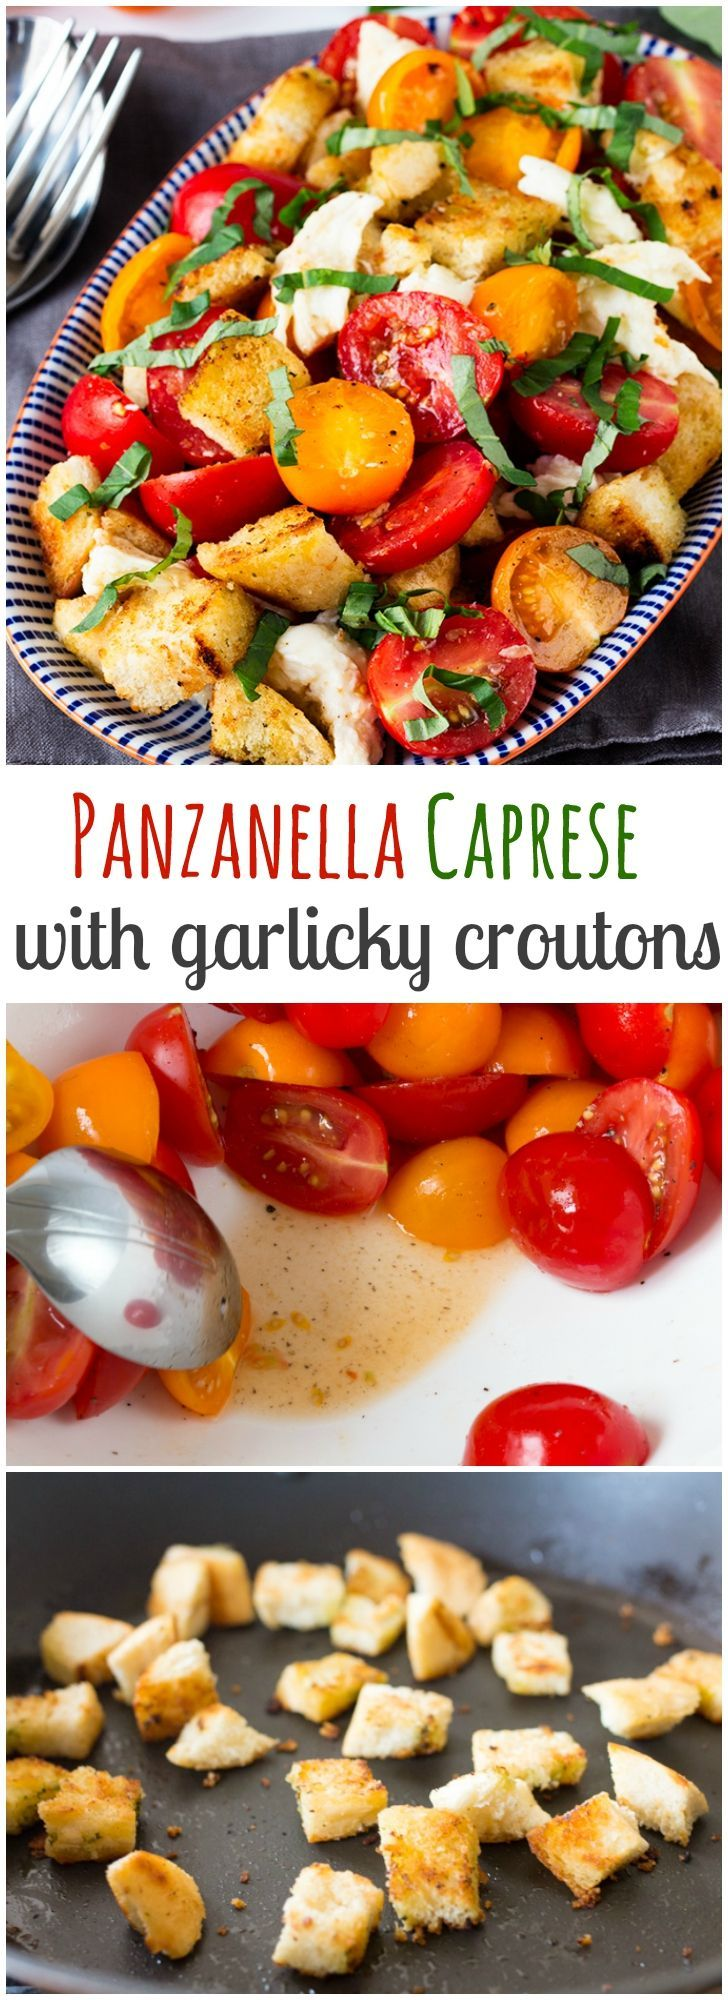 Panzanella Caprese salad. The dressing-soaked garlic croutons are what makes this salad so amazing!